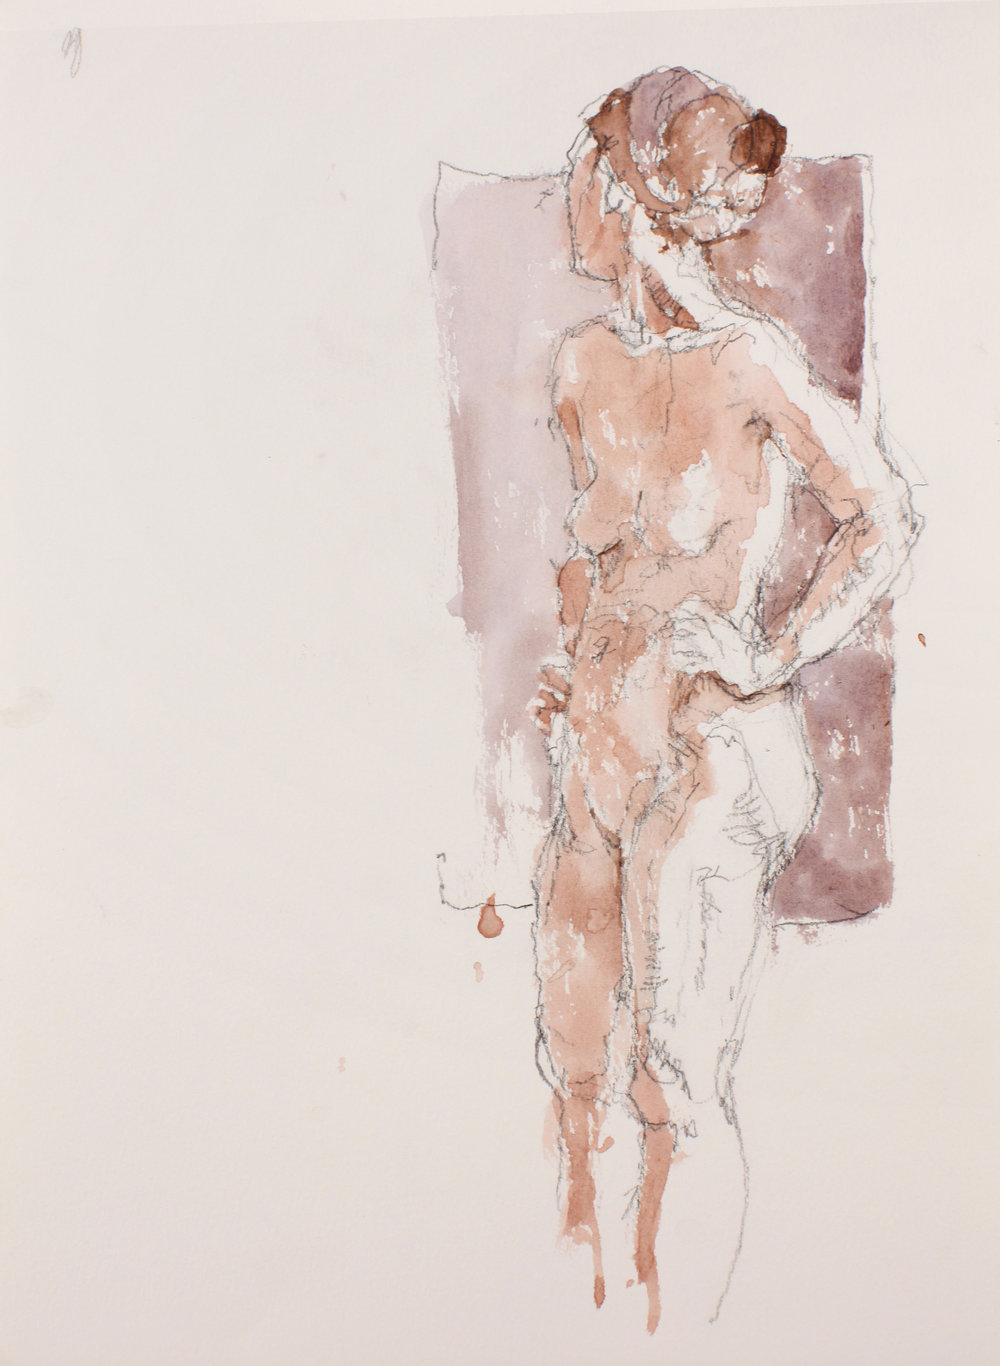 2007_Standing_Nude_with_Scarf_watercolour_and_pencil_on_paper_15x11in_WPF121.jpg